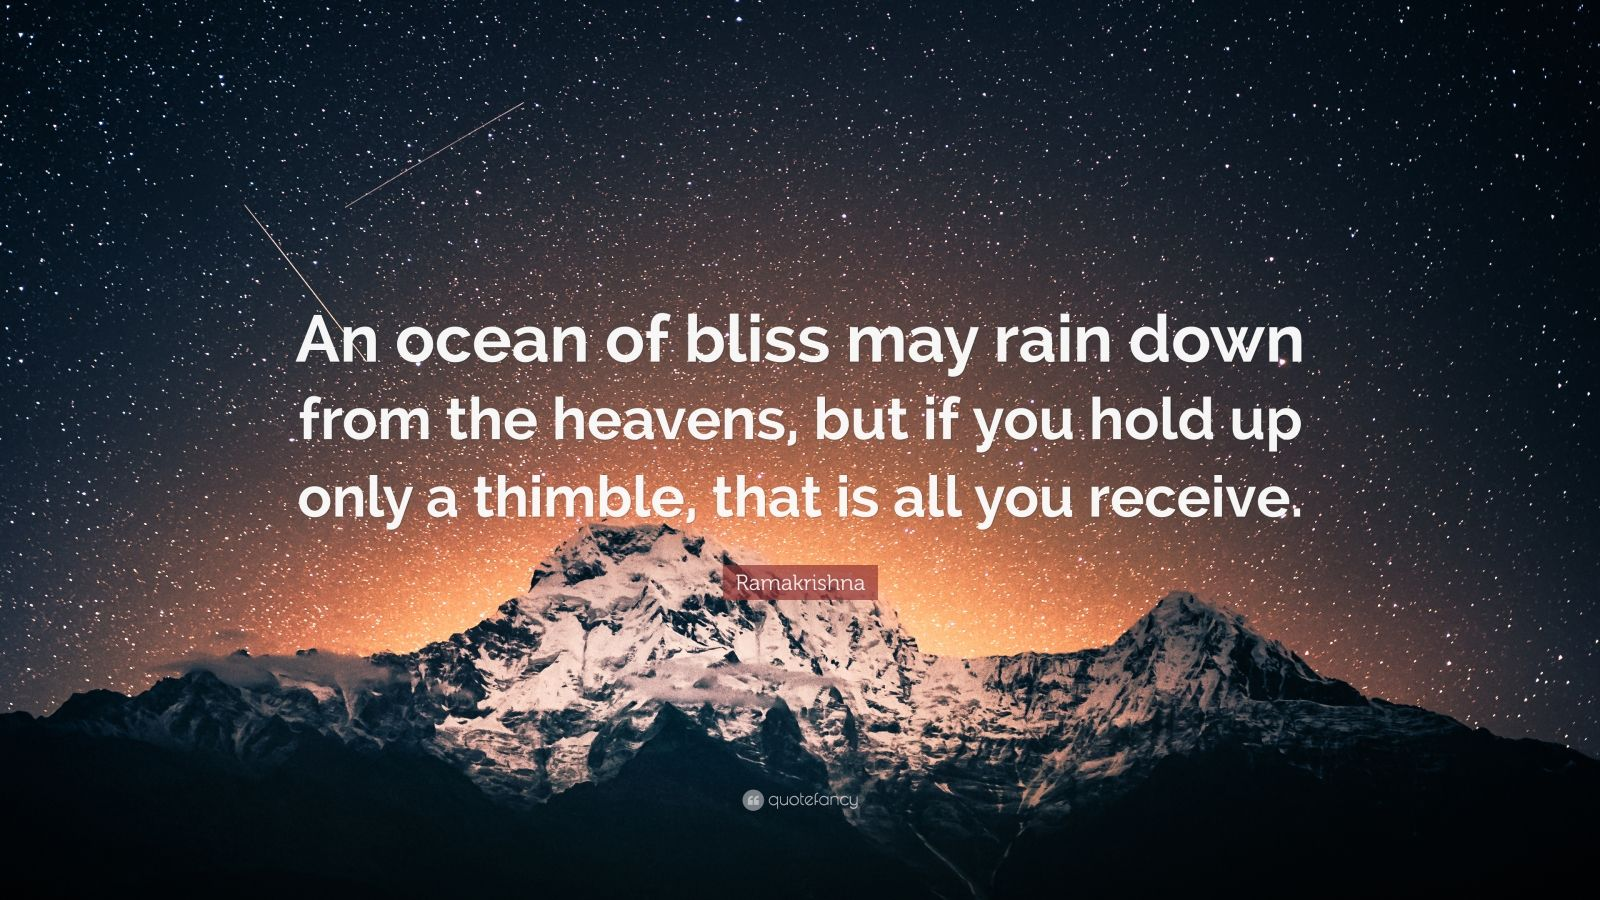 """Ramakrishna Quote: """"An ocean of bliss may rain down from the heavens, but if you hold up only a thimble, that is all you receive."""""""